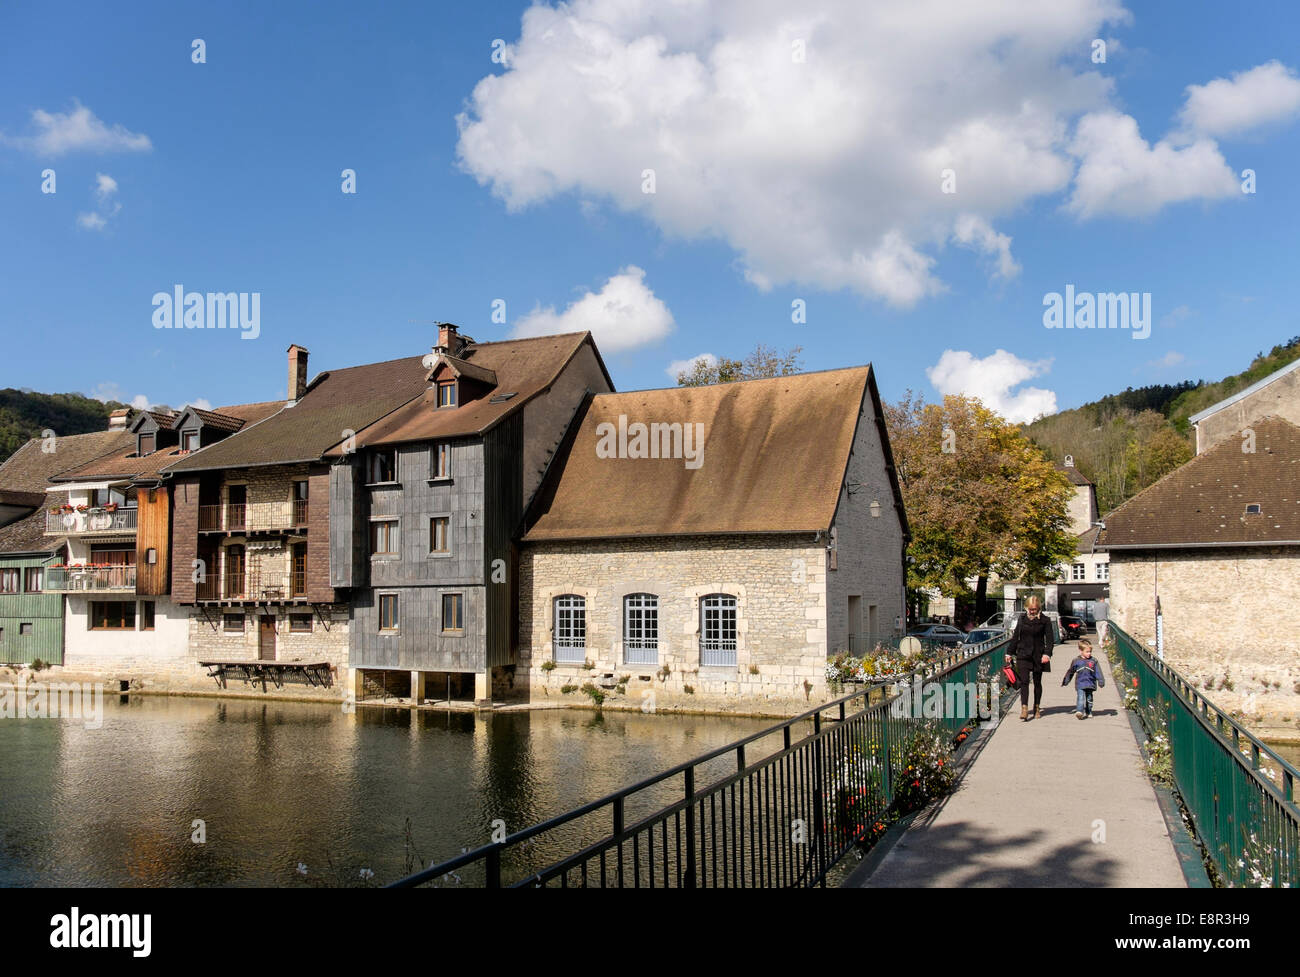 River Loue footbridge with quaint old houses in Loue Valley town of Ornans, Doubs, Franche Comte, France, Europe - Stock Image